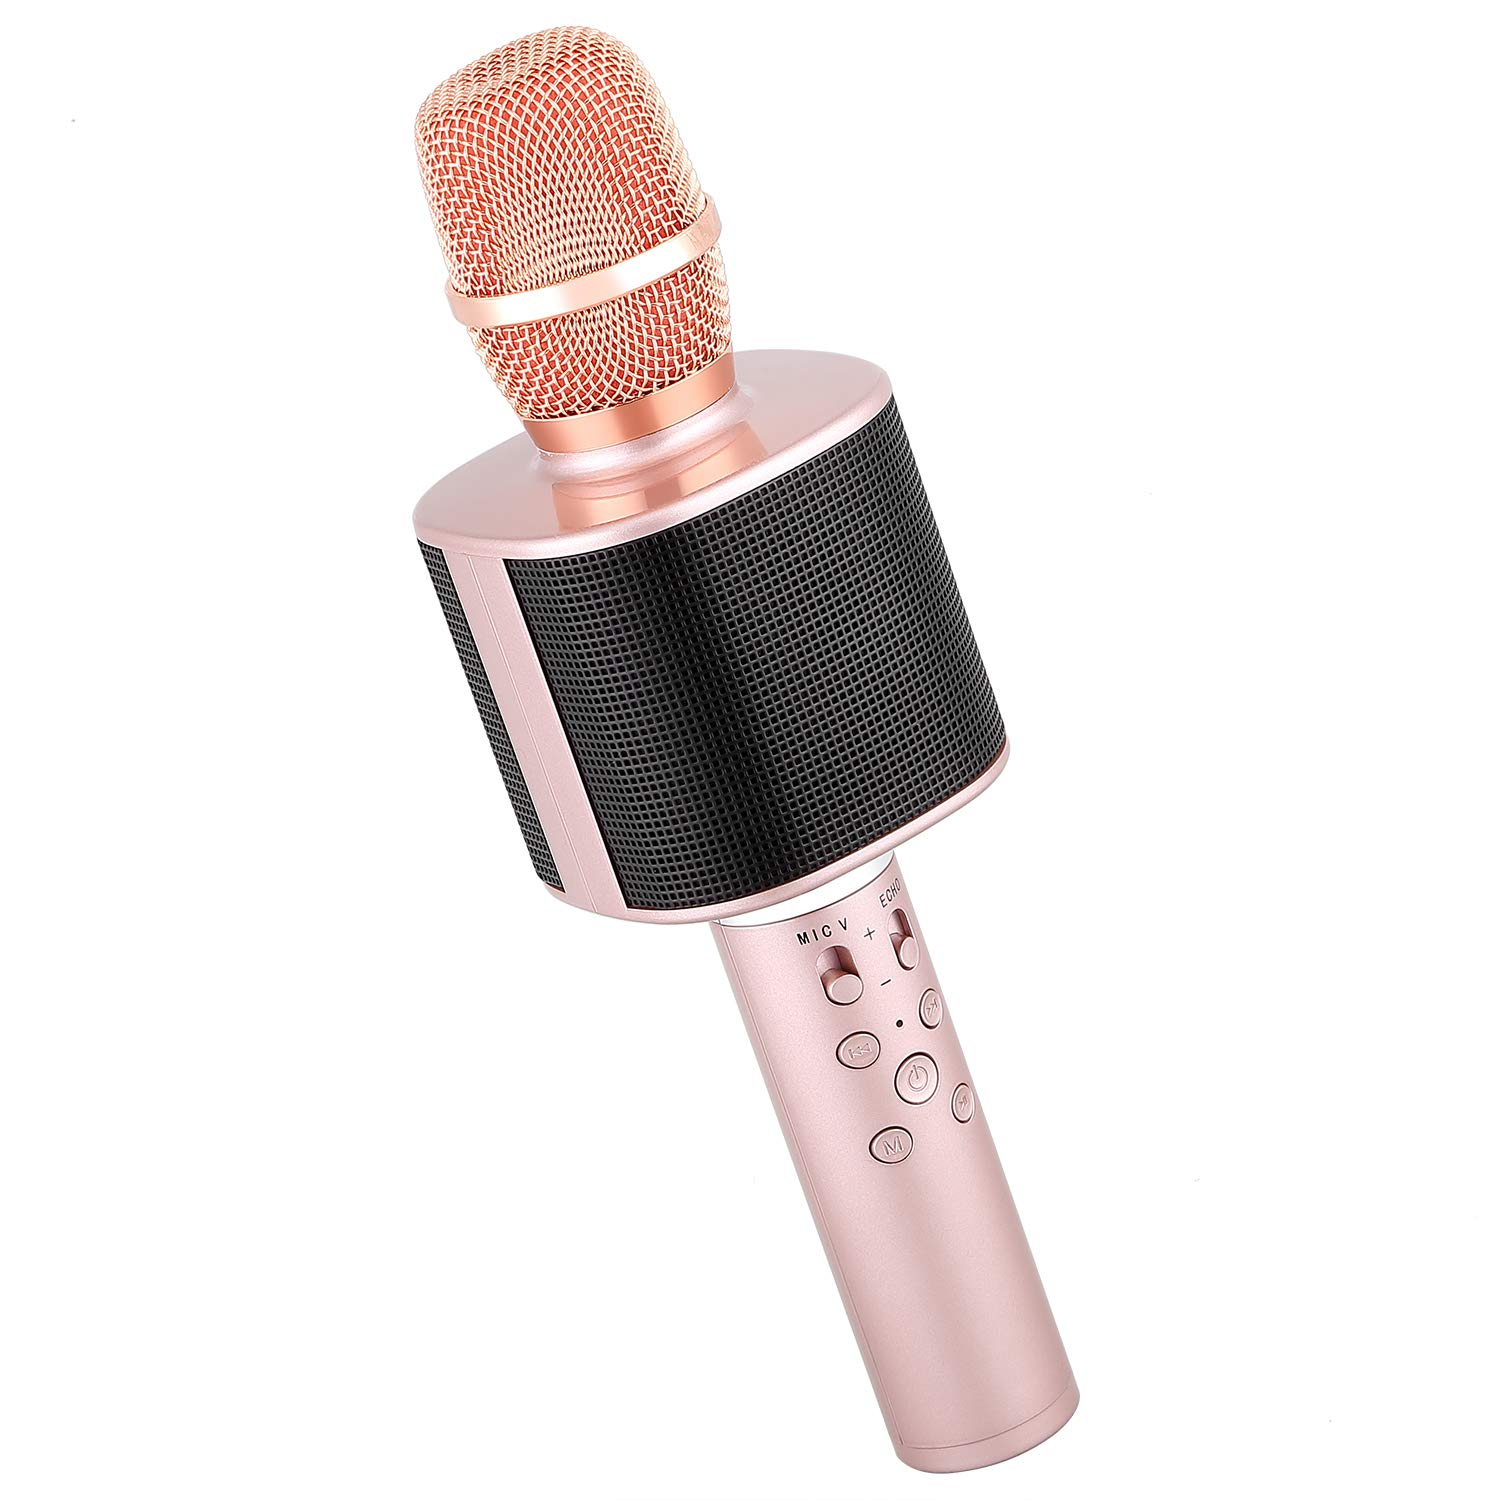 Mbuynow Wireless Bluetooth Karaoke Microphone with Phone Holder, Portable Karaoke Machine Speaker Home Party Birthday for Android/iPhone/iPad/Sony/PC (Rose Gold) by Mbuynow